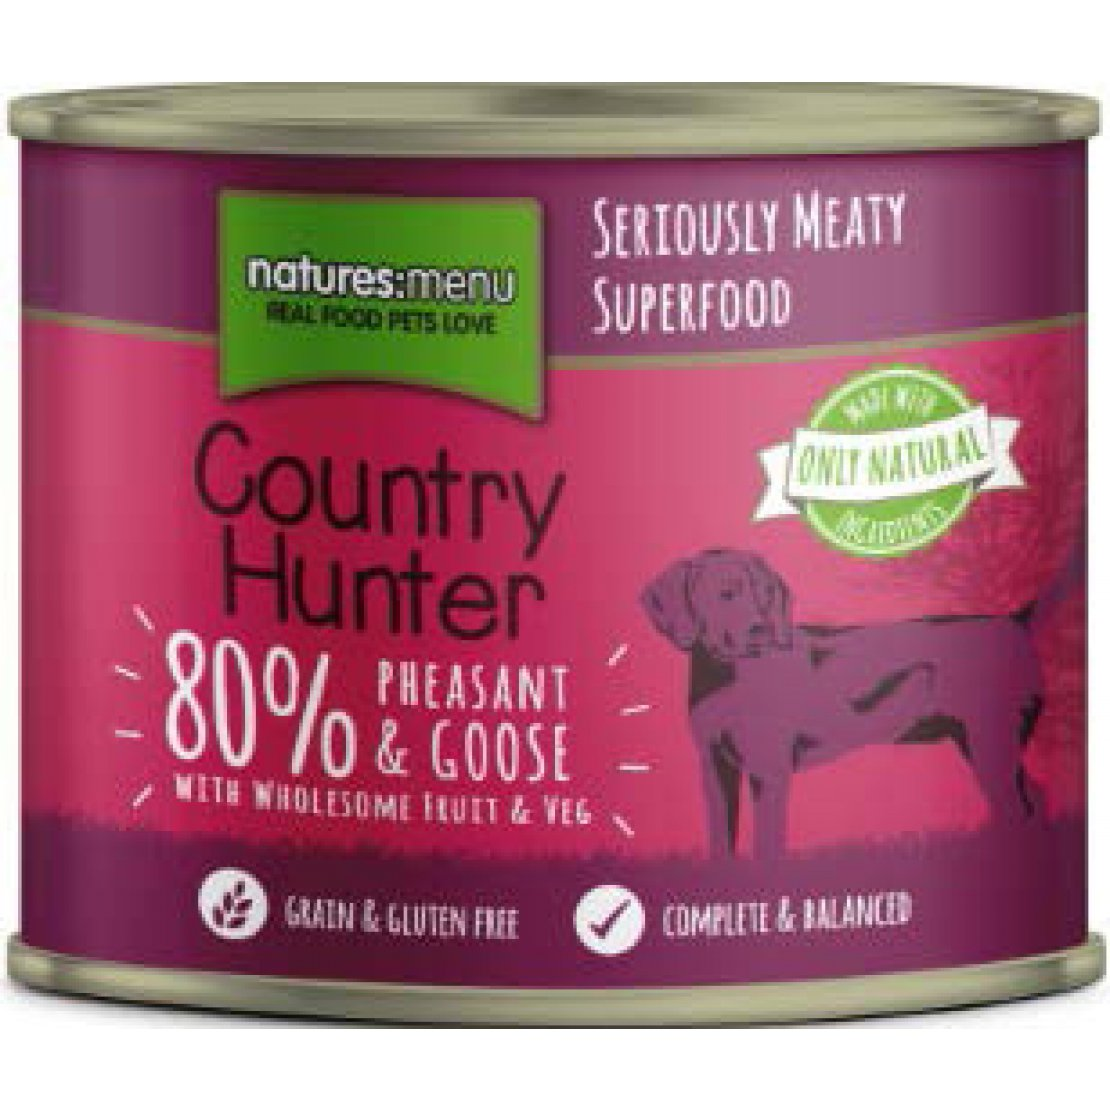 ONLY AVAILABLE FOR LOCAL DELIVERY. Country Hunter Dog Food Can. Pheasant & Goose. 6Pk.